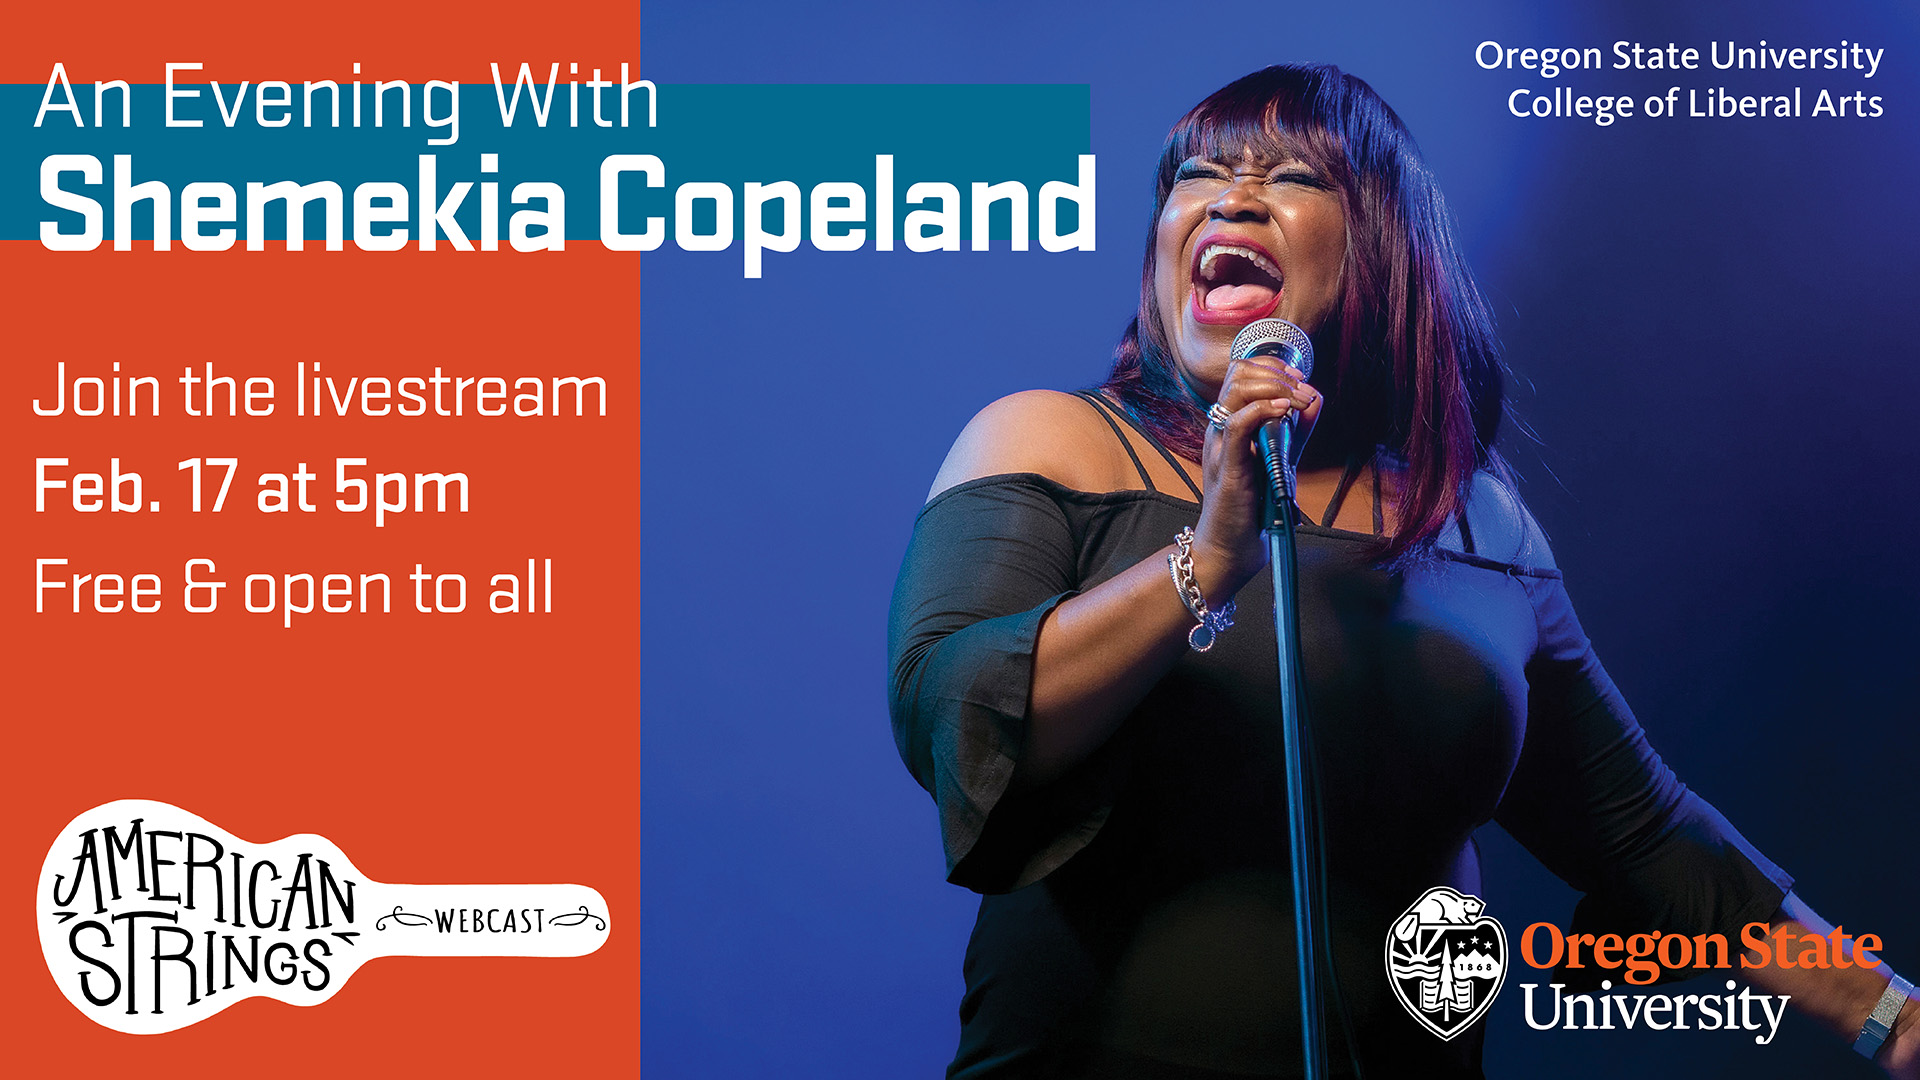 American Strings - An Evening with Shemekia Copeland